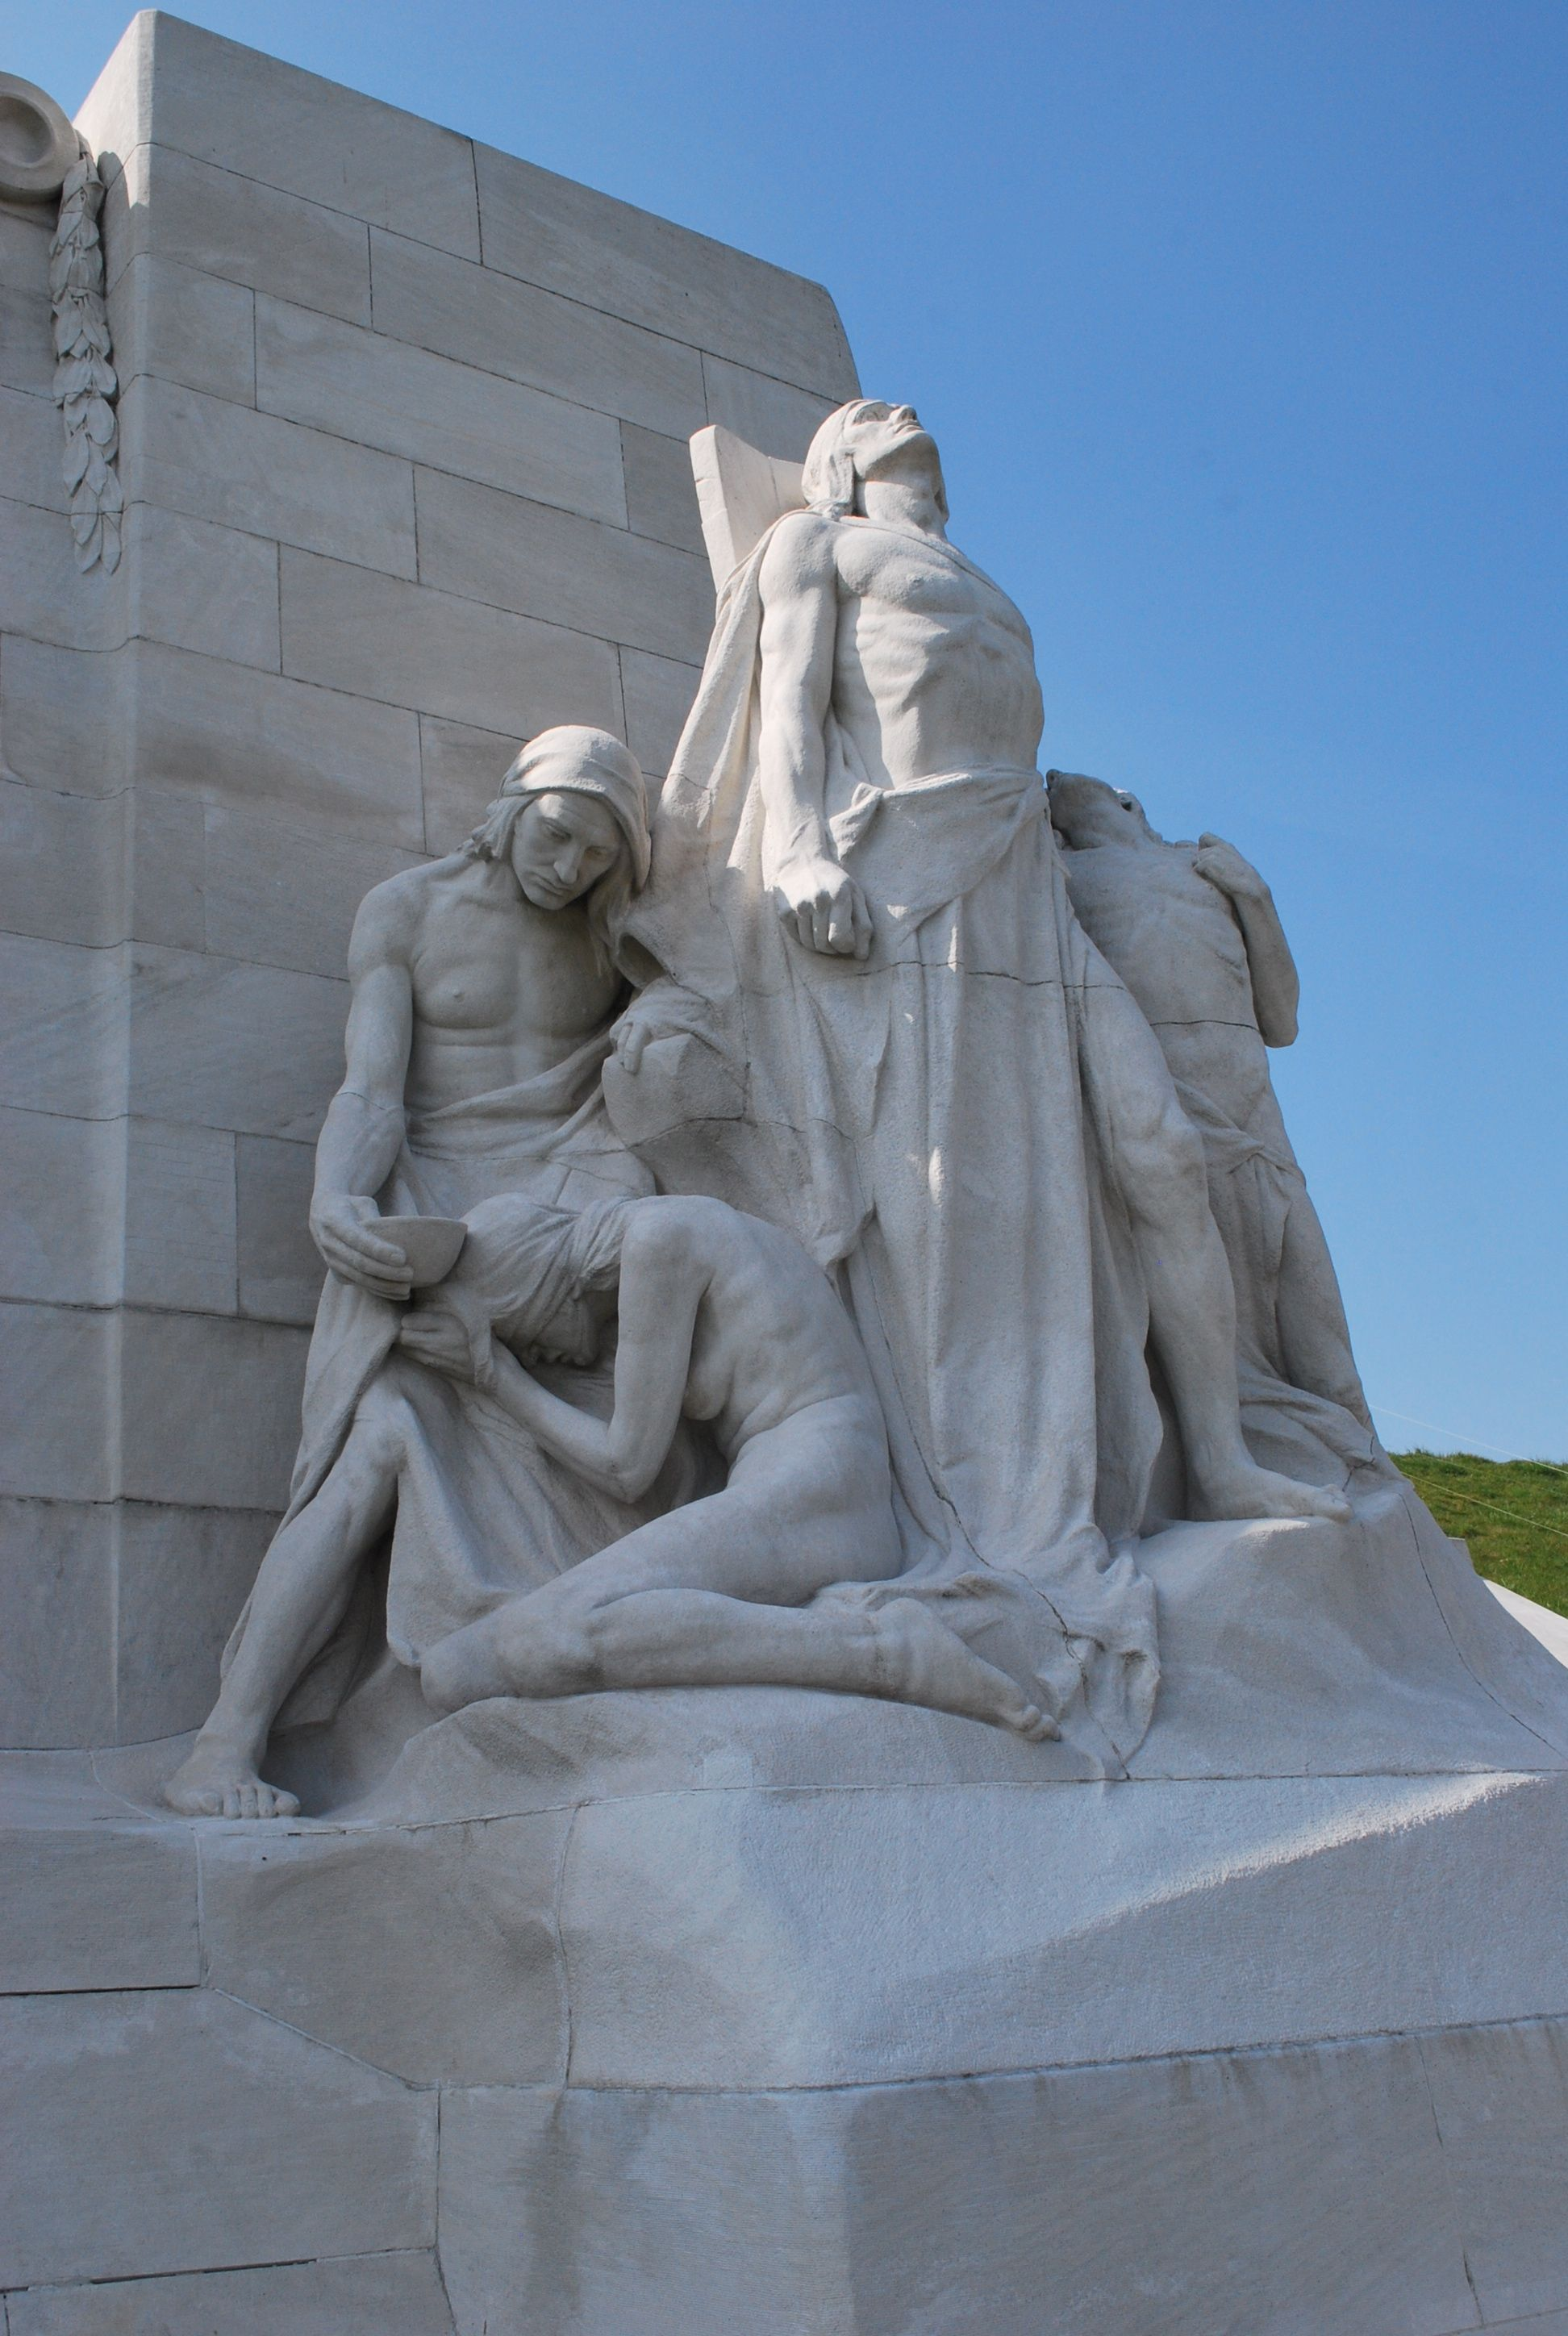 One of two groups of Defenders (Sympathy of the Canadians for the Helpless) at Canadian National Vimy Memorial